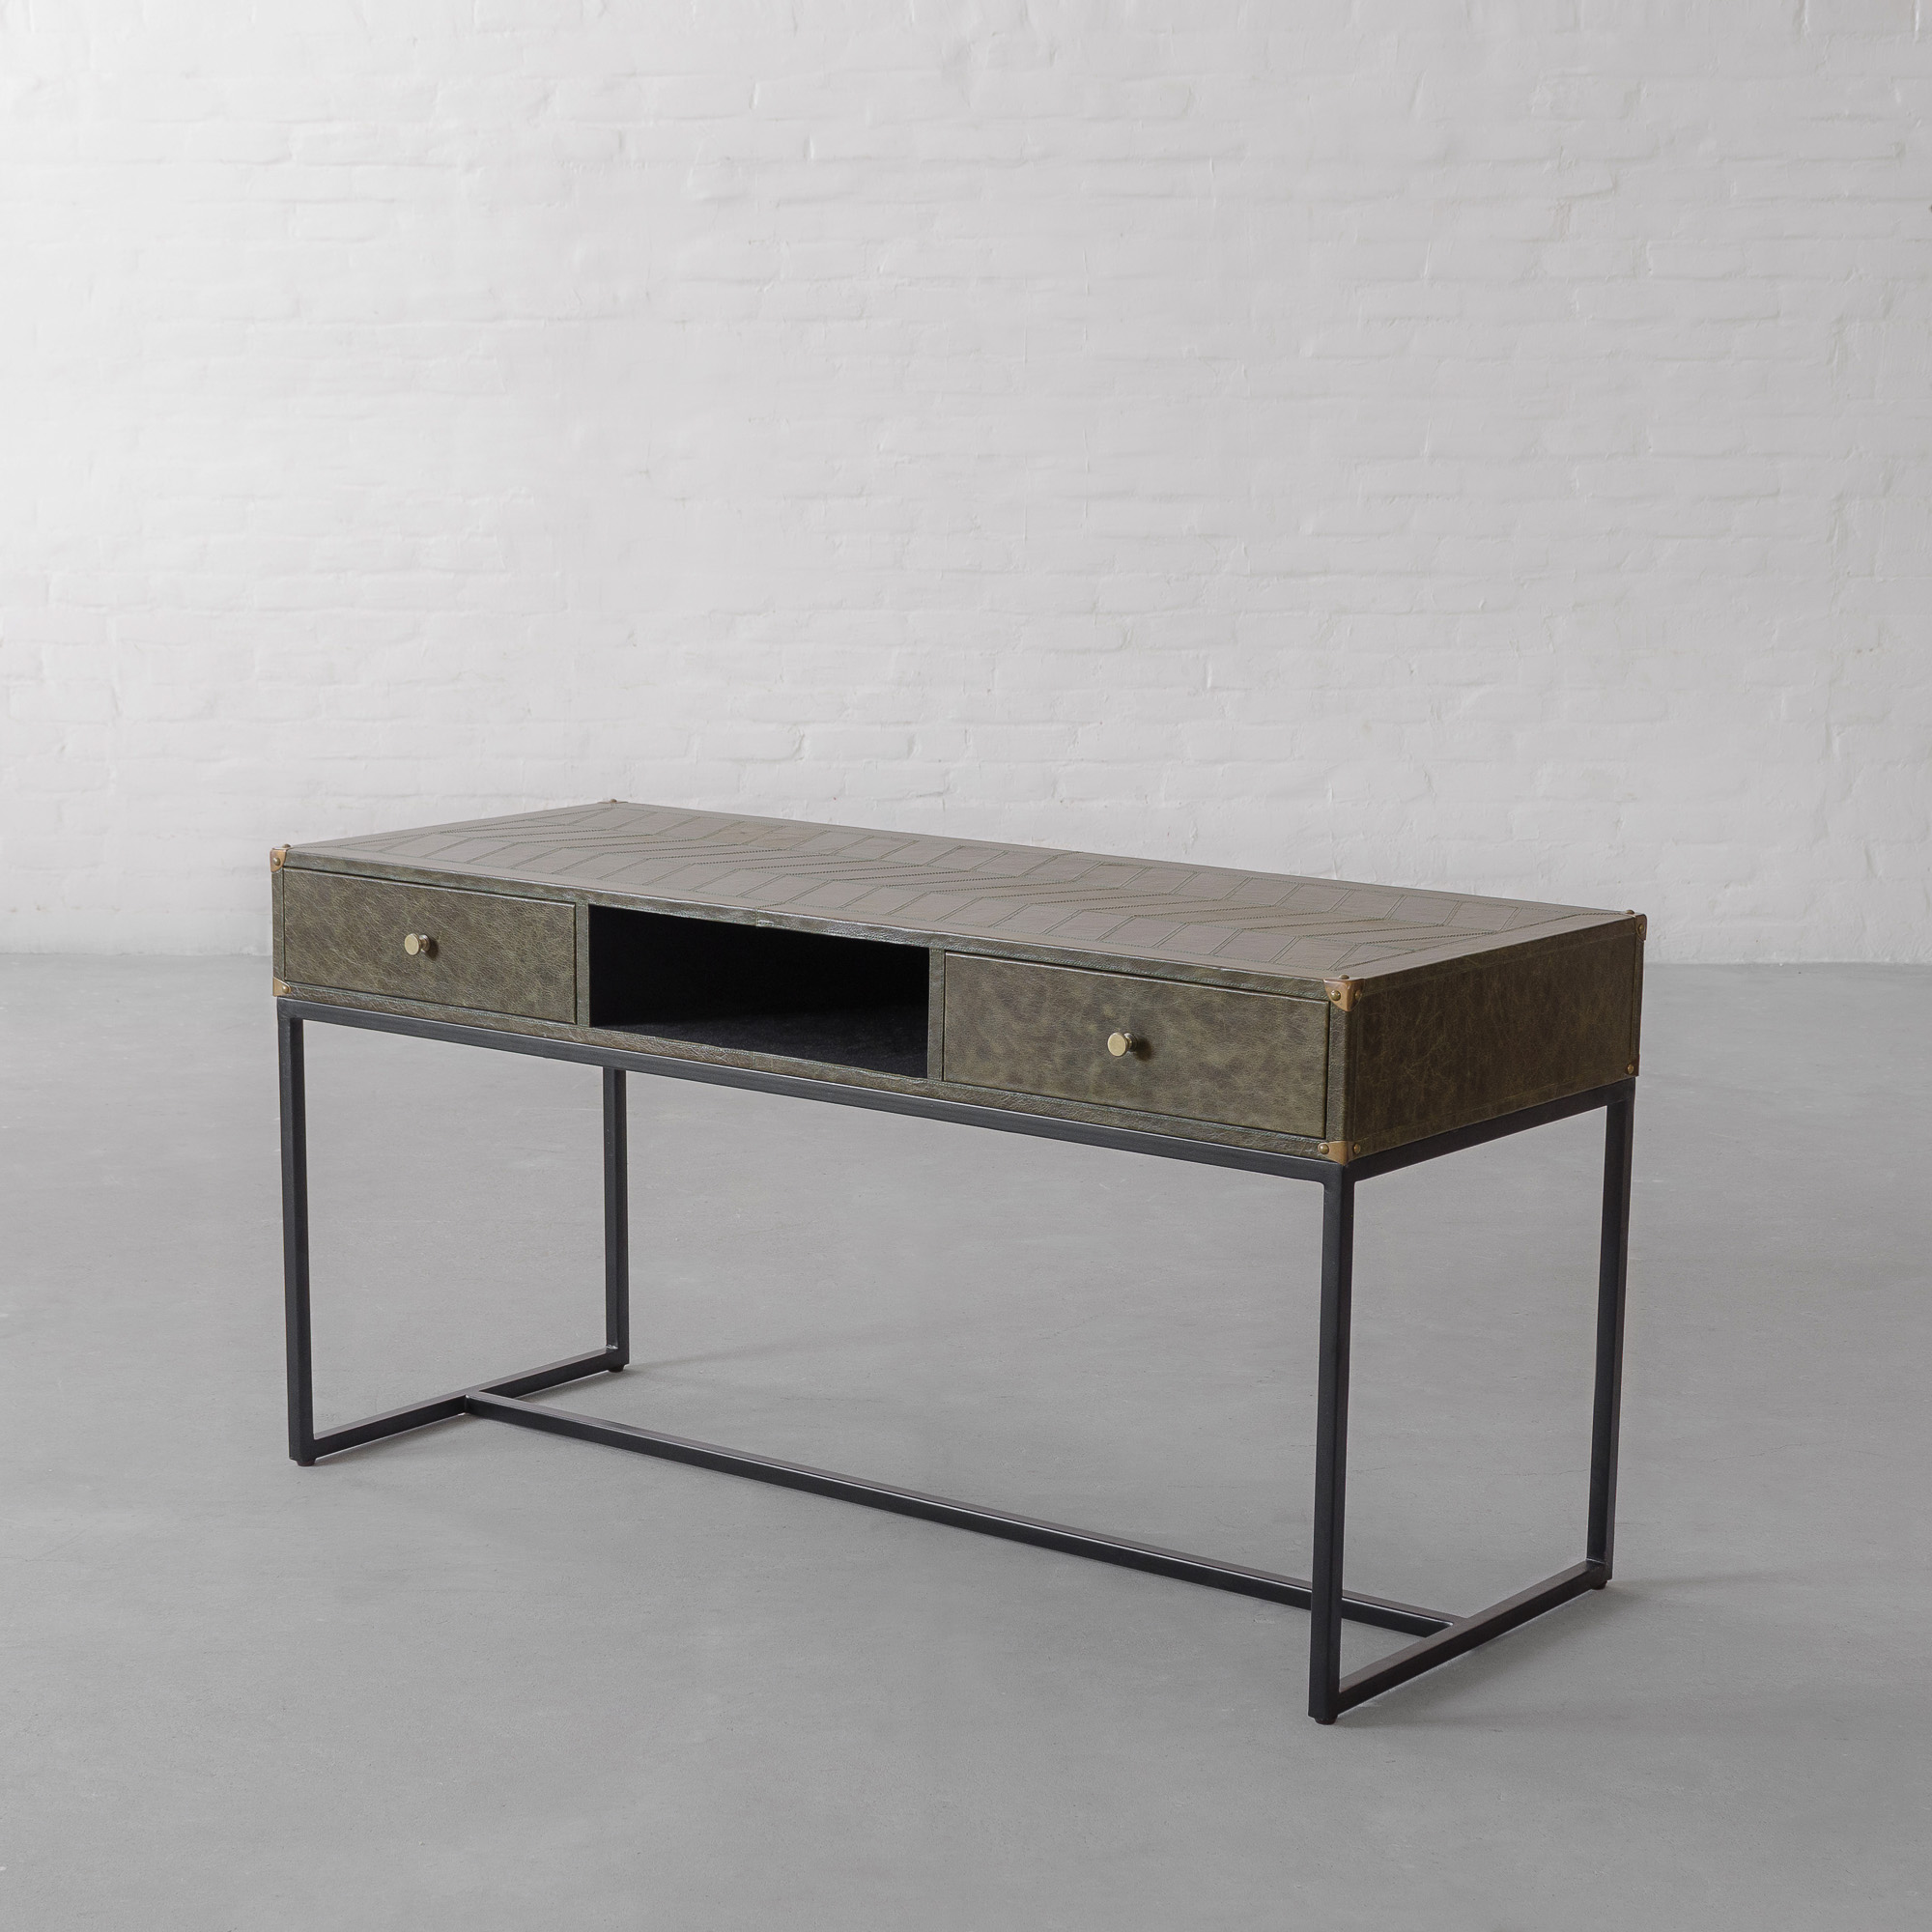 EDWARD LEATHER CLAD STUDY TABLE